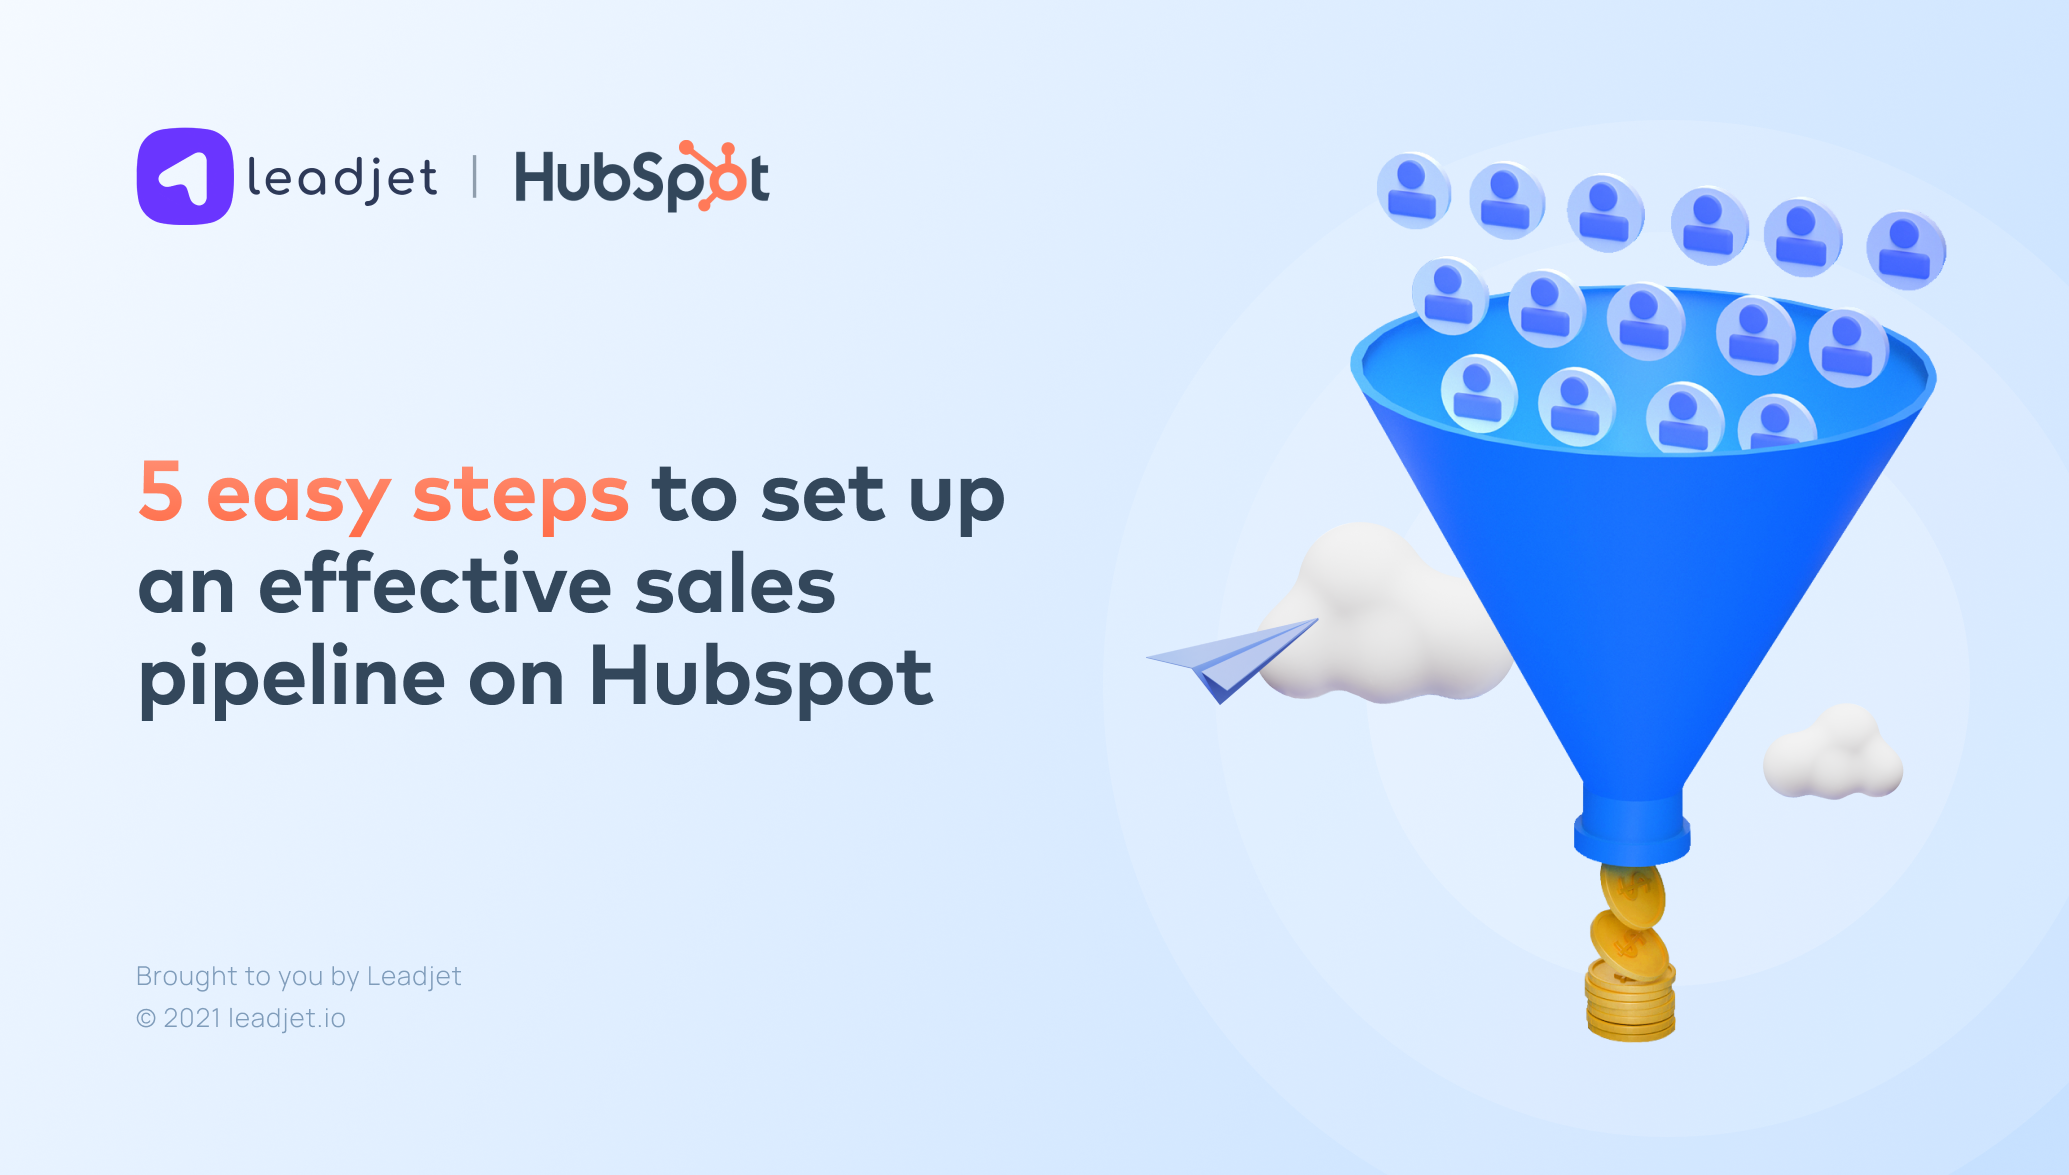 5 easy Steps to set up an effective sales pipeline on HubSpot